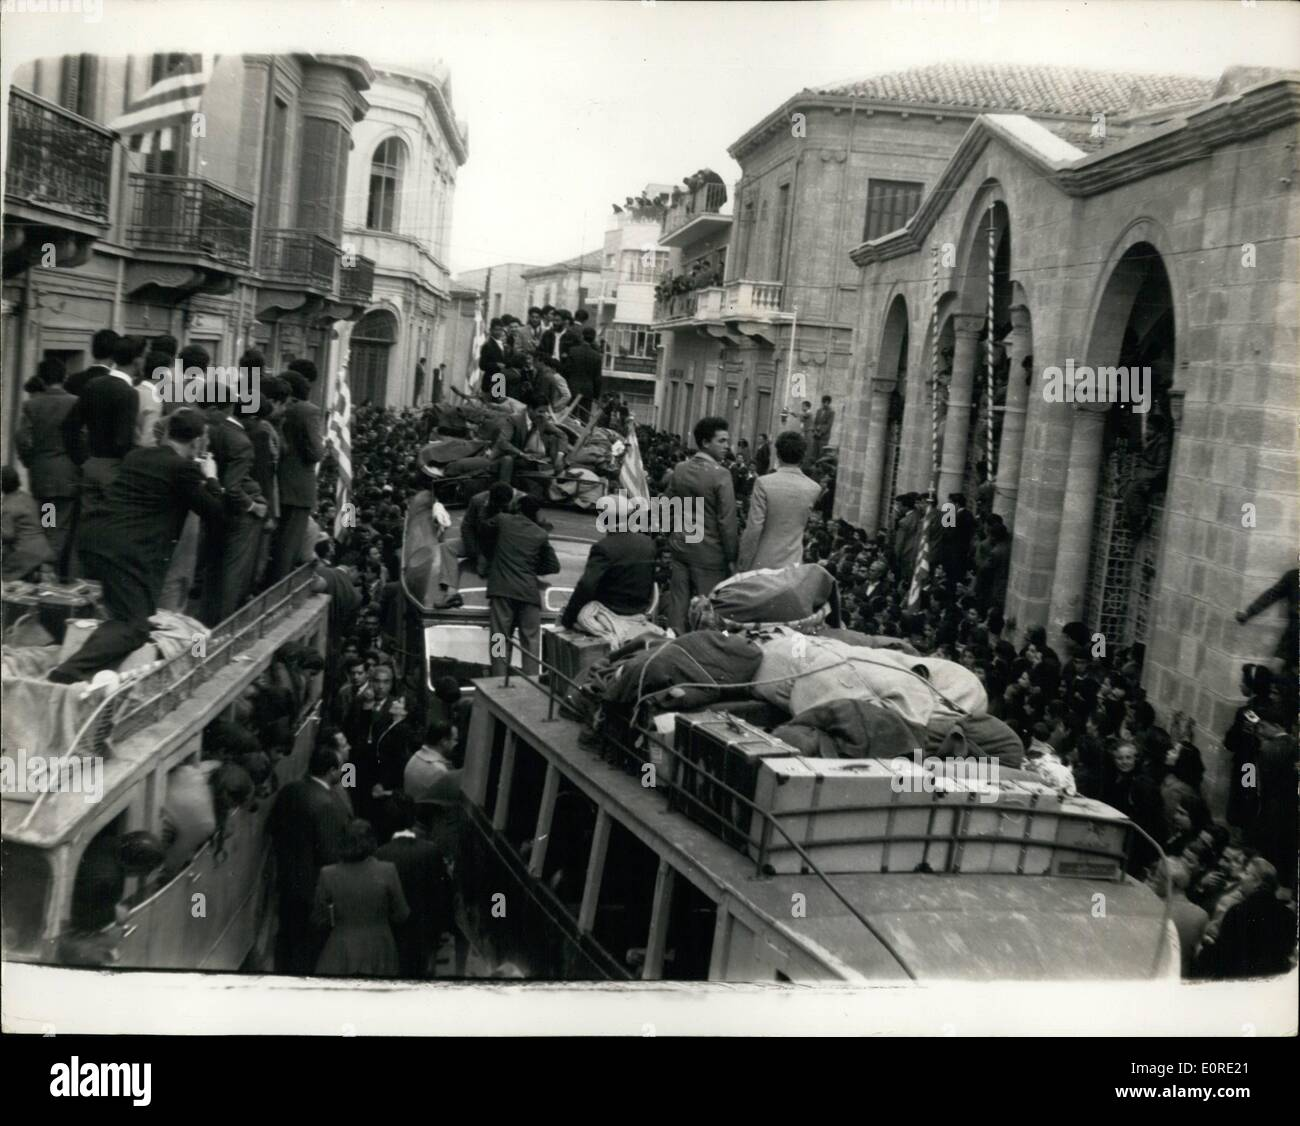 Feb. 02, 1959 - Detainees released in Cyprus: The scene in Nicosia on Sunday, when, after the release of more than 900 detainees in Cyprus, they went to the Phaneromeni Church, Nicosia, in an on buses, to kiss the ikons and give thanks. - Stock Image